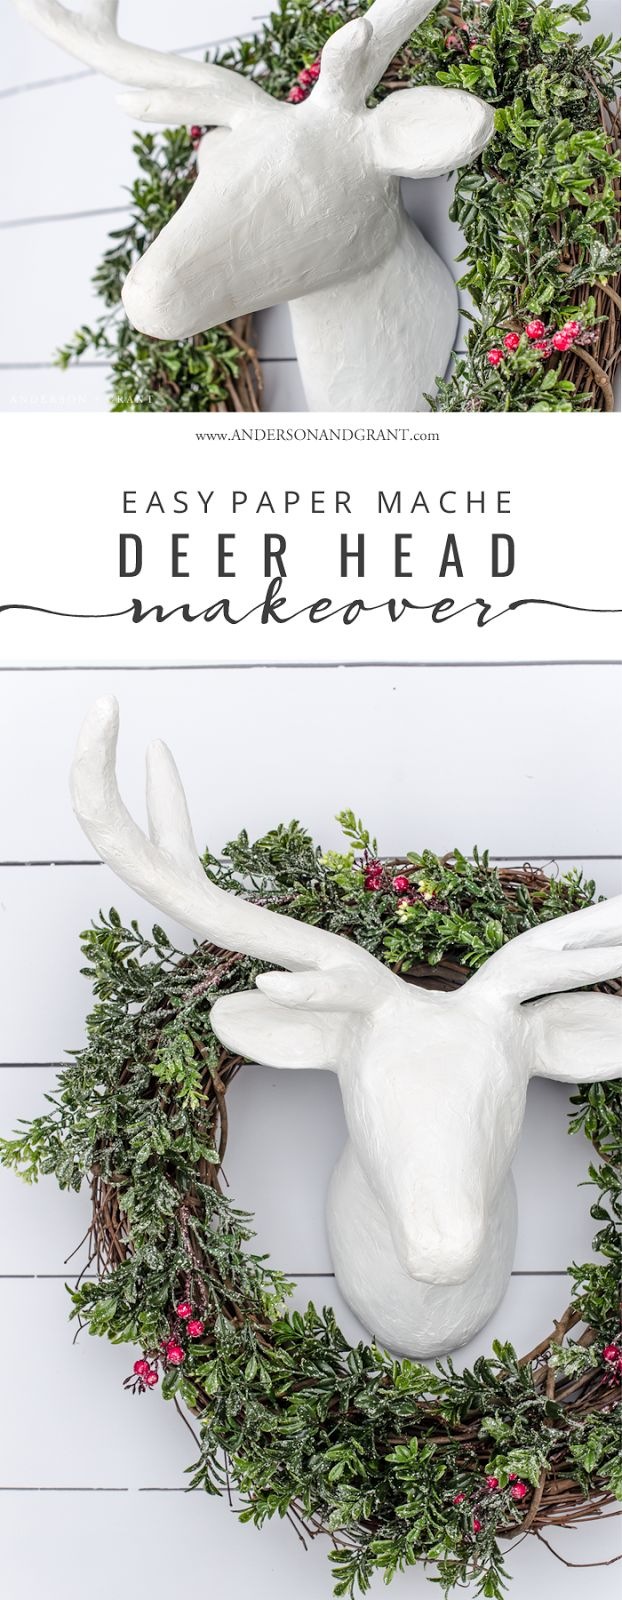 See how a basic paper mache deer head from the craft store is given a makeover with joint compound from the hardware store.  |  www.andersonandgrant.com